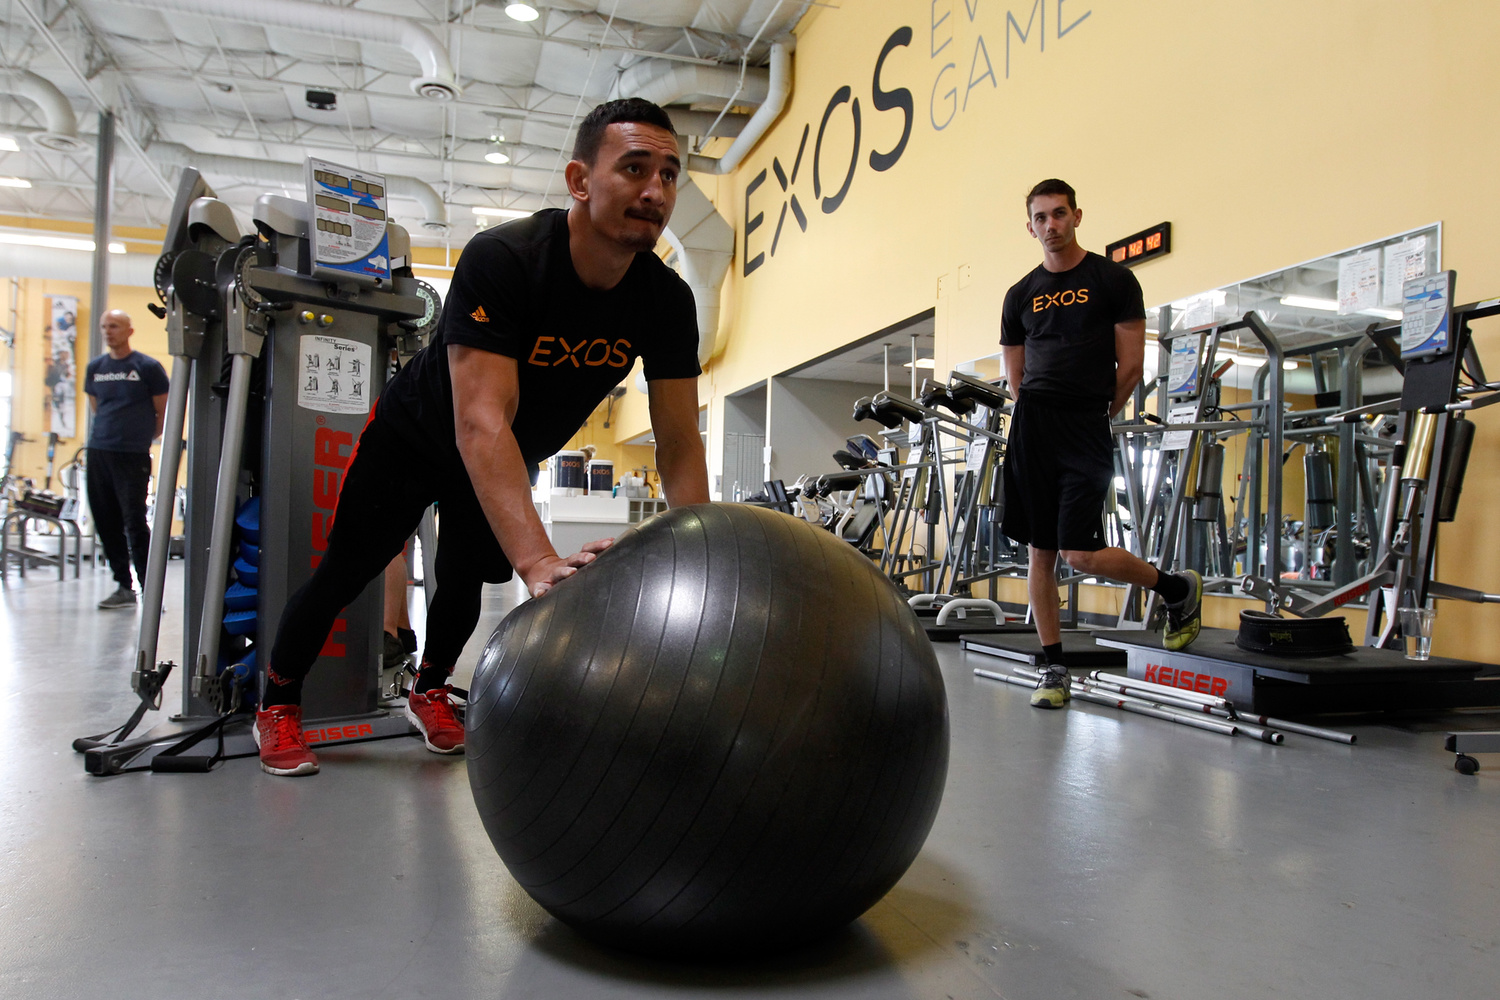 Here's The Best Martial Art Millennials Should Get Into, According To UFC Fighter Max Holloway